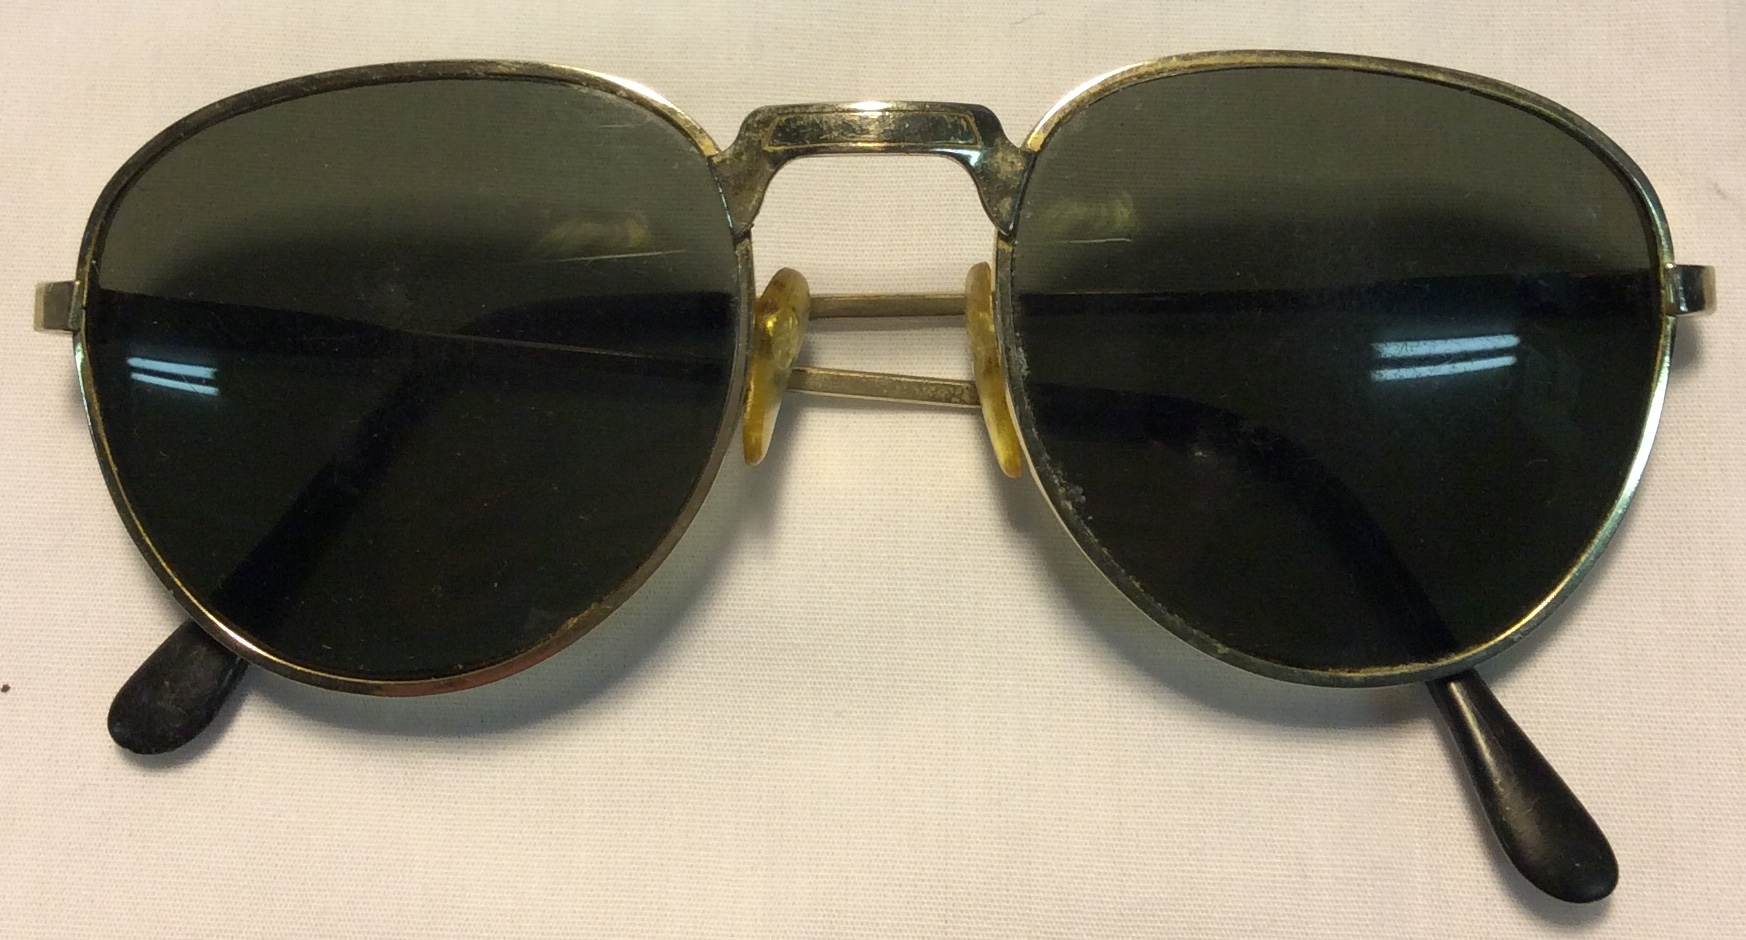 Gold metal frames, black plastic